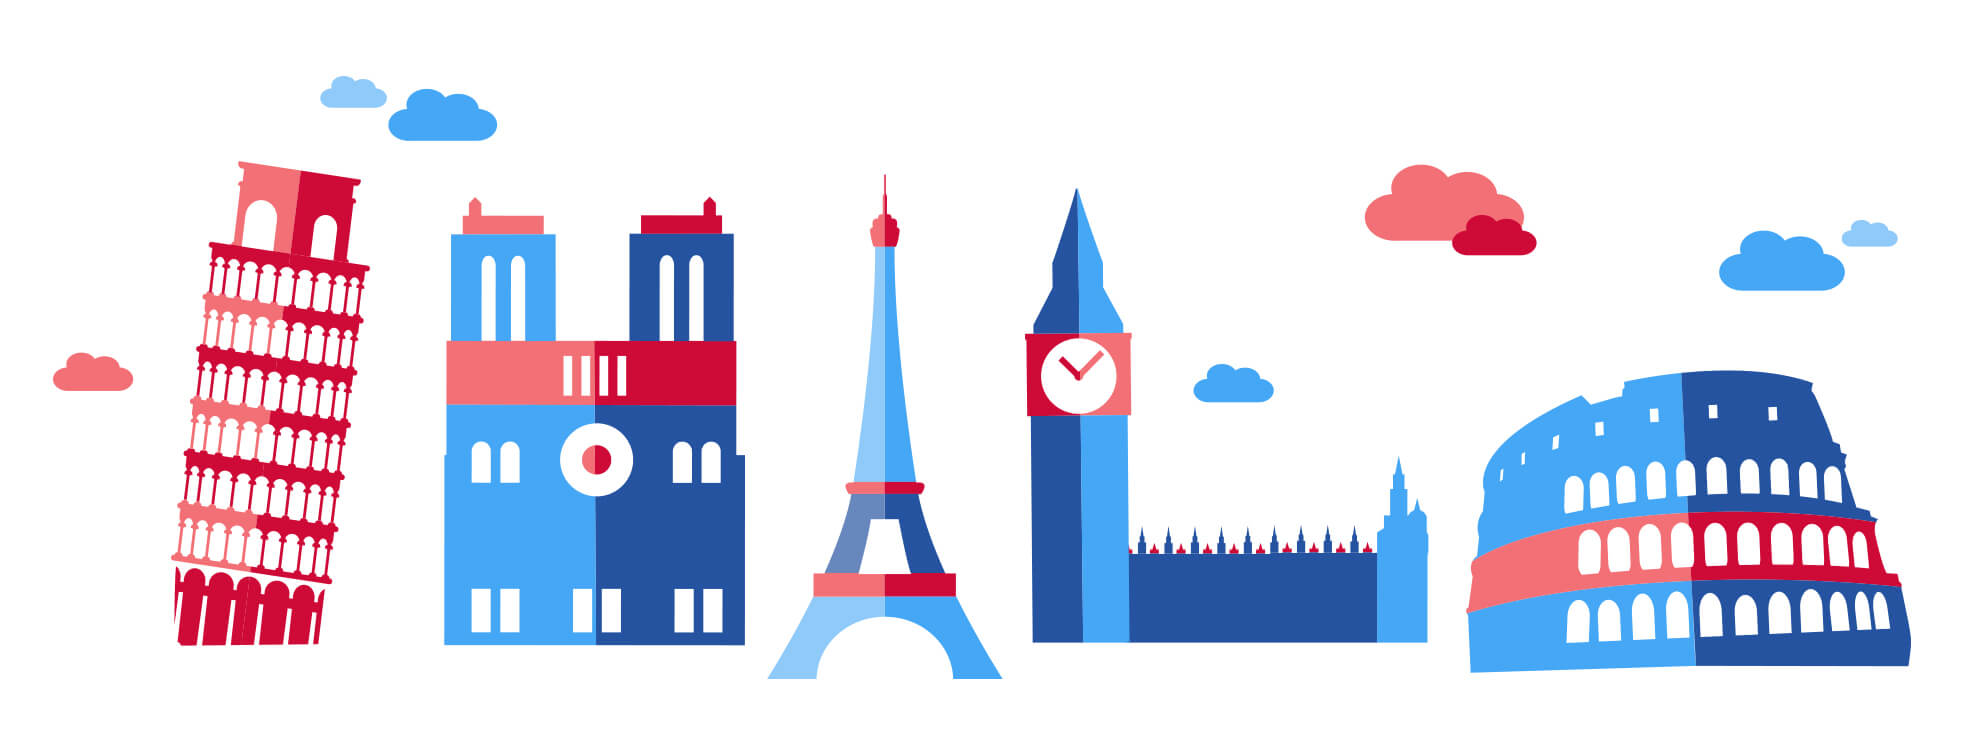 Leaning tower of Pisa, Notre Dame, Eiffel Tower, Big Ben and Roman Collesium